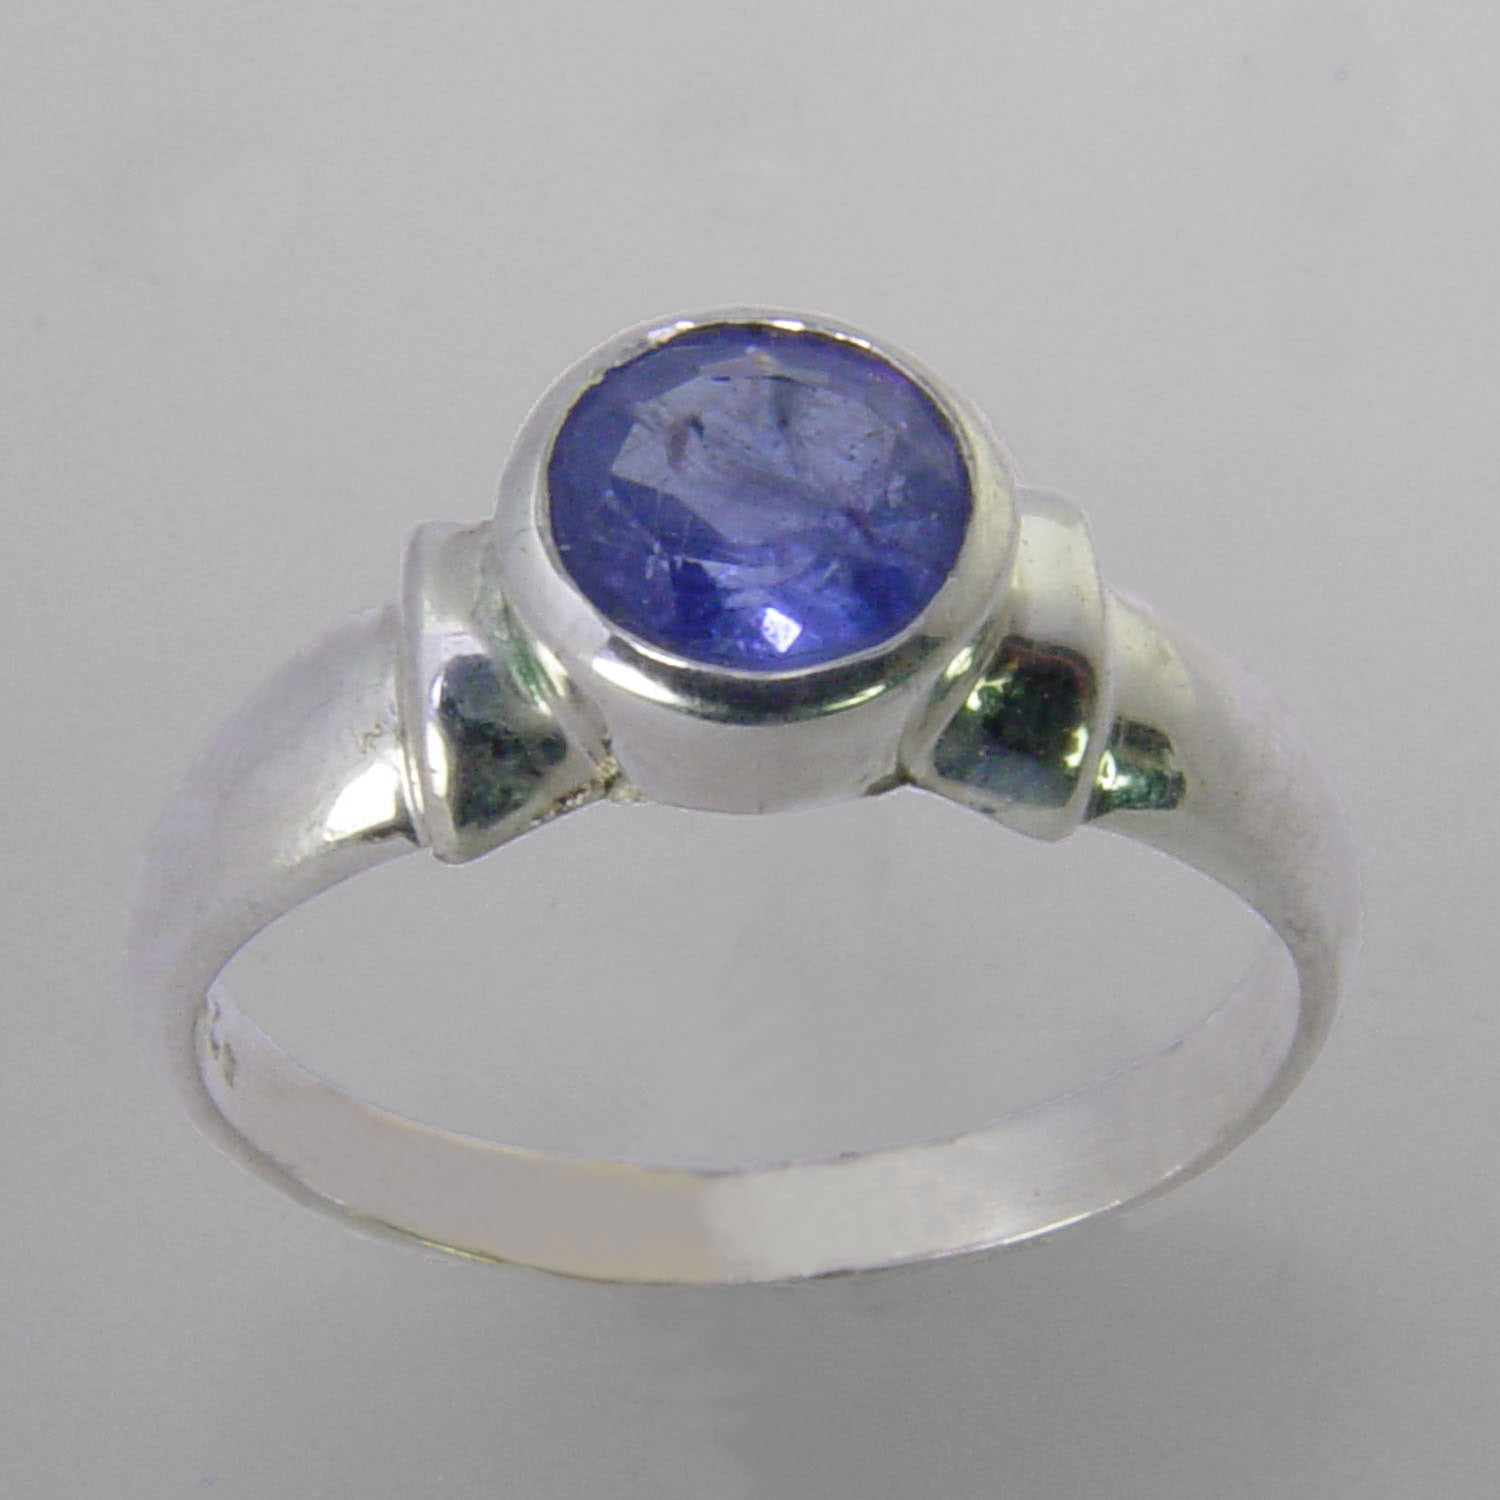 Tanzanite 1.3 ct Faceted Round Sterling Silver Ring, Size 9